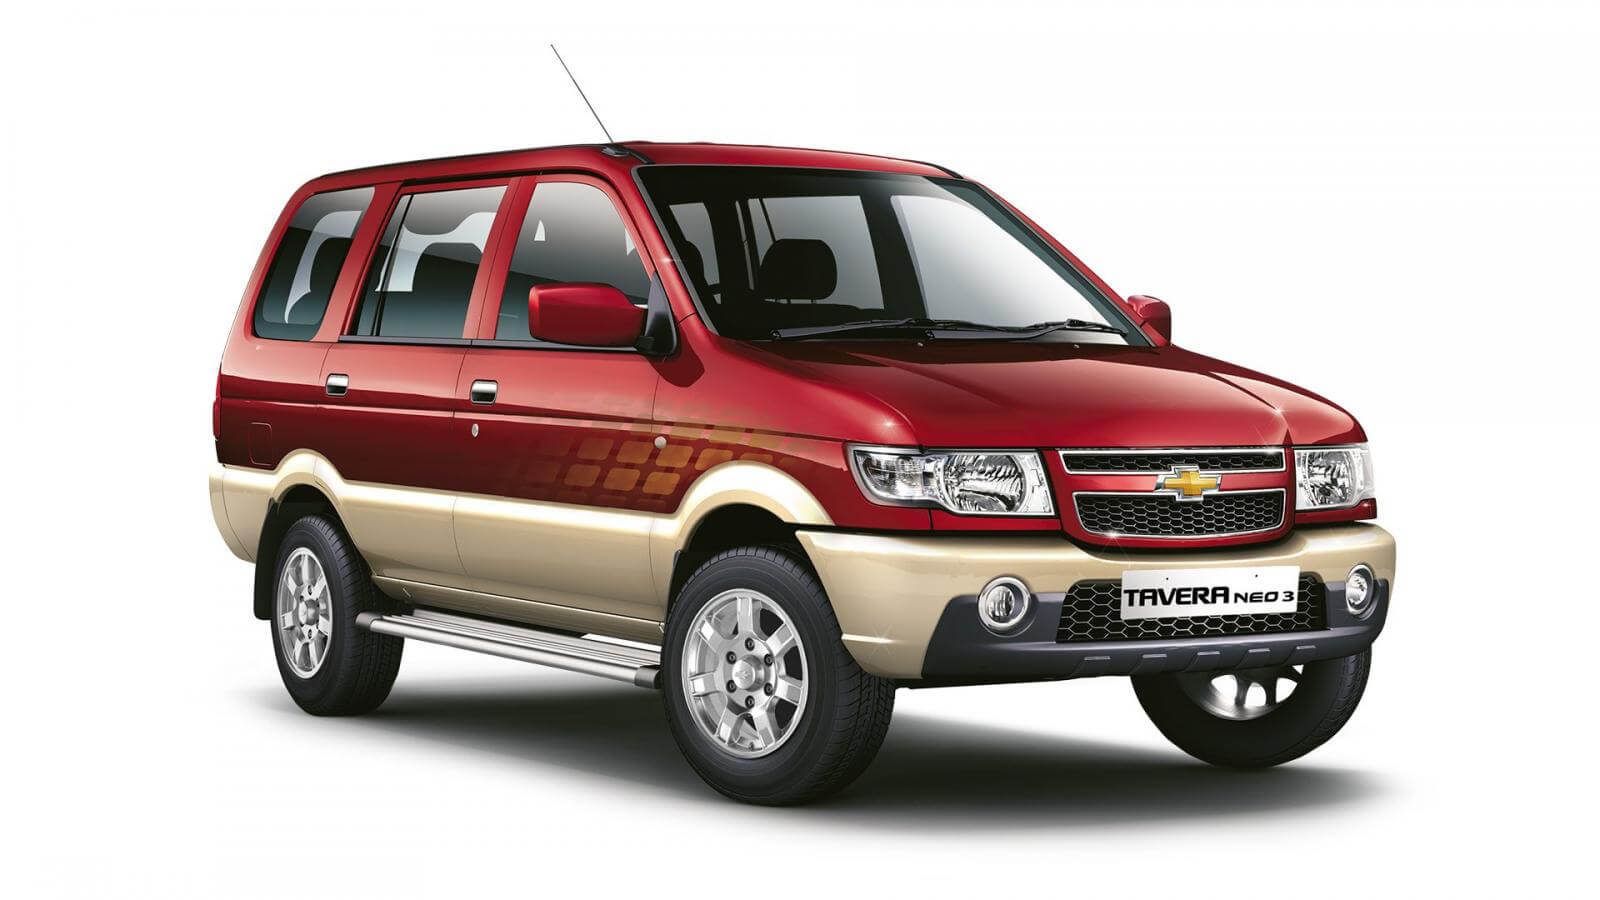 Aig Auto Insurance >> Chevrolet Tavera wallpapers, free download